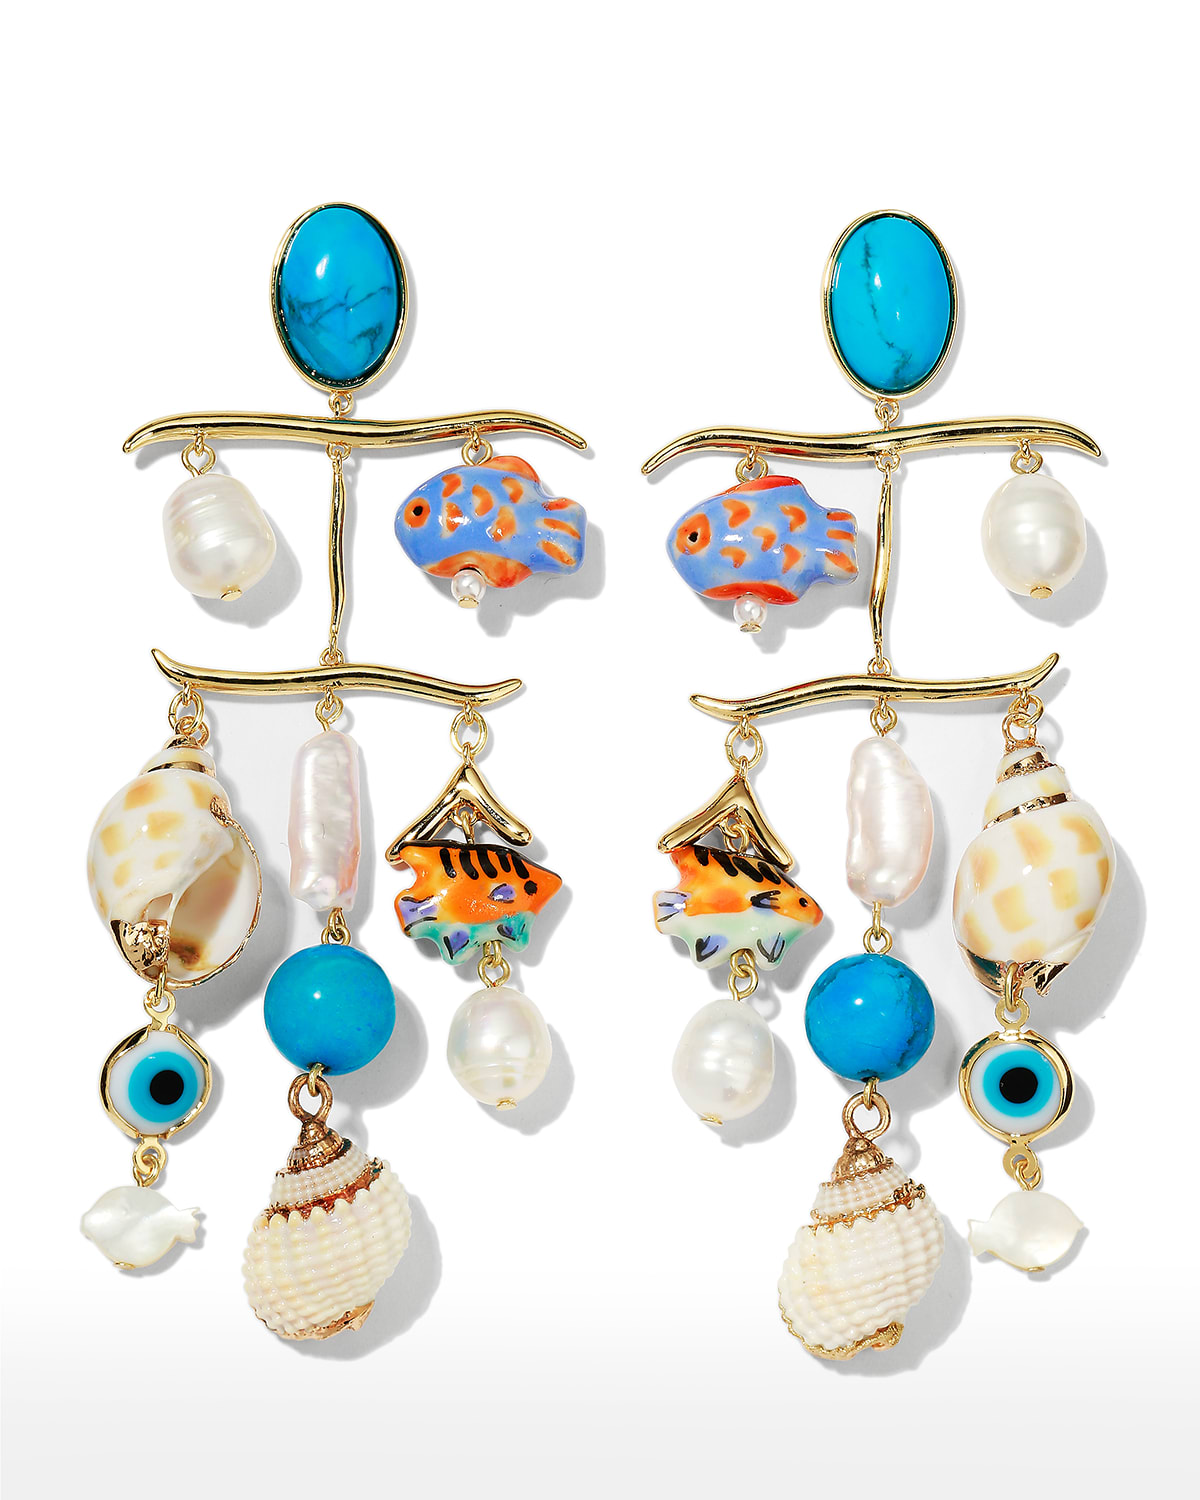 Andros Charm Earrings